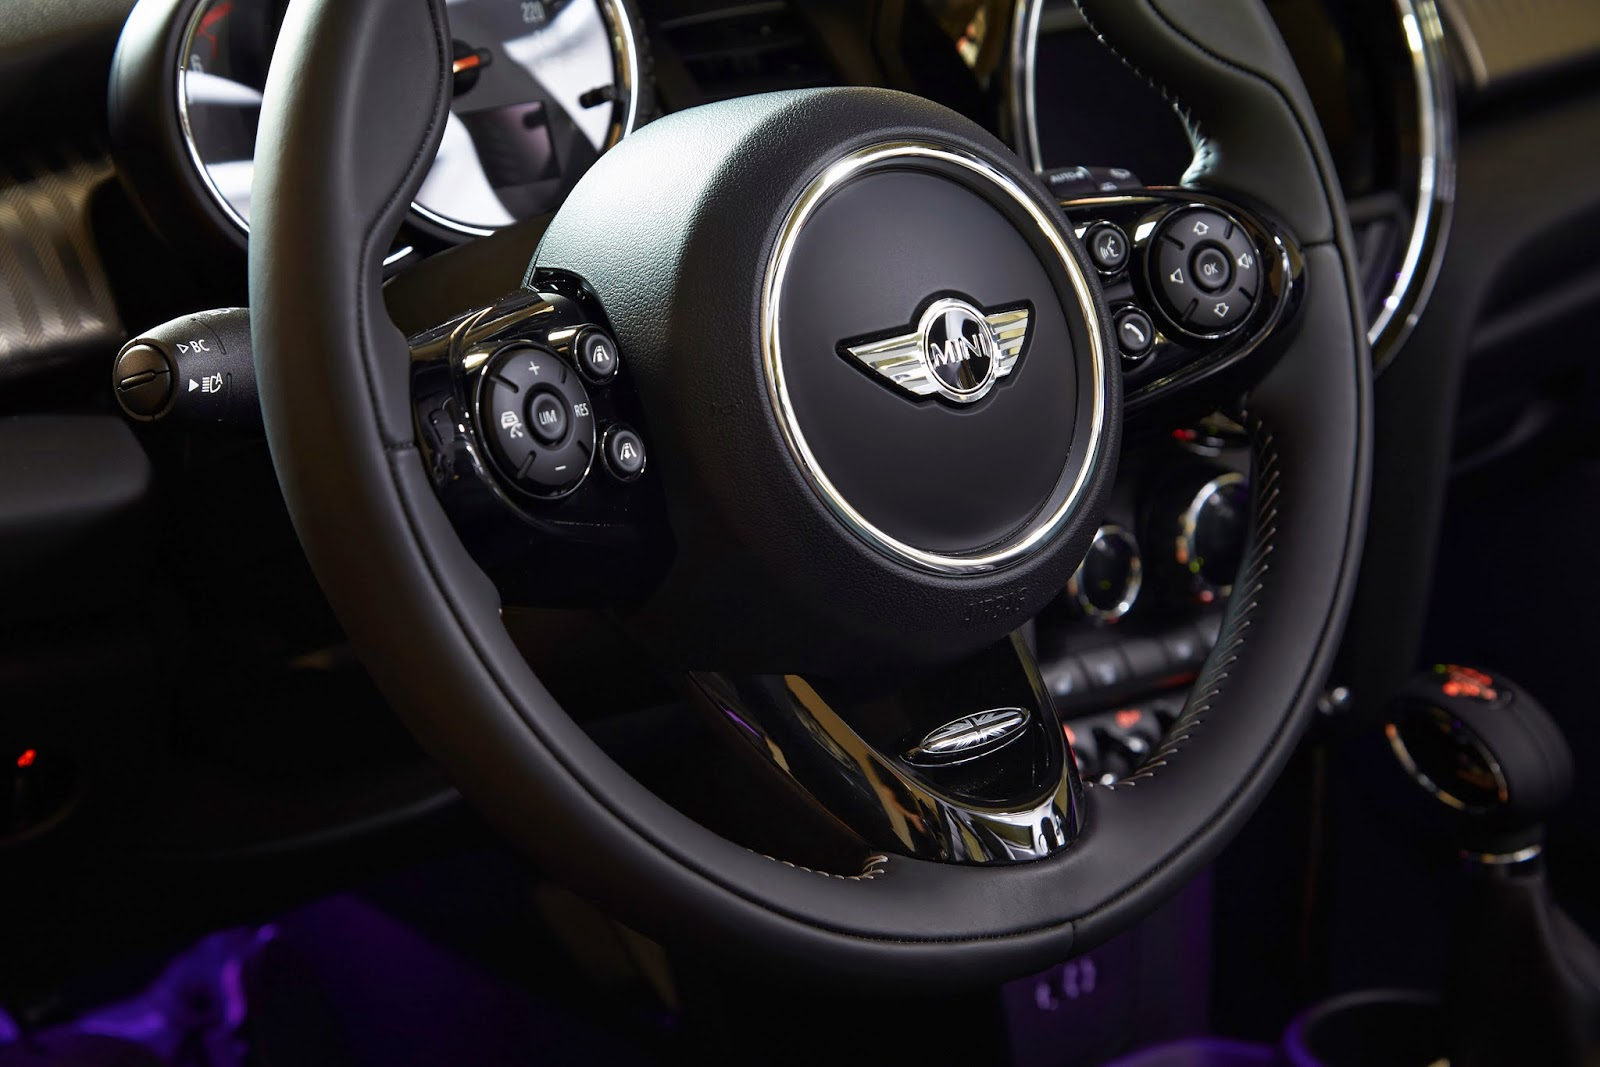 Steering wheel detail of the 2015 Mini Cooper S Hardtop 4 Door